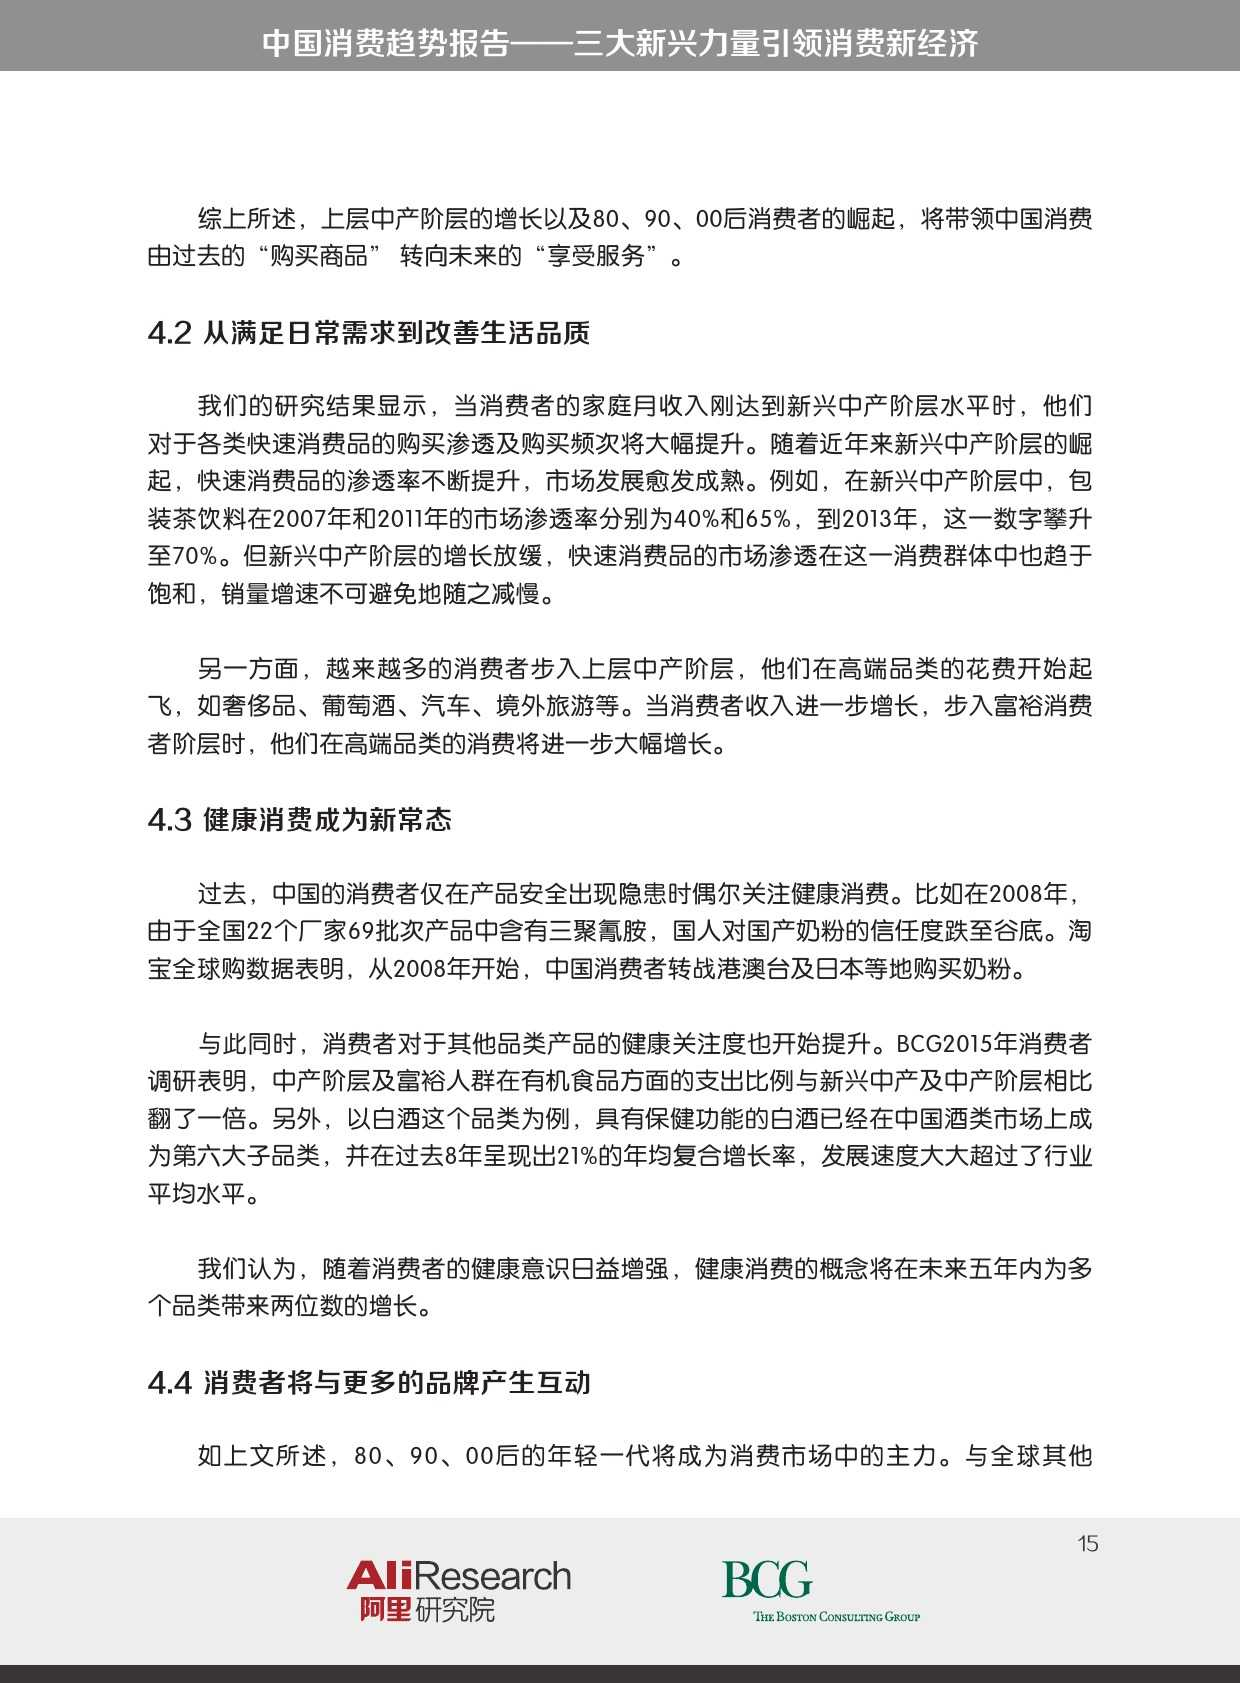 BCG_The_New_China_Playbook_Dec_2015_CHN_000015